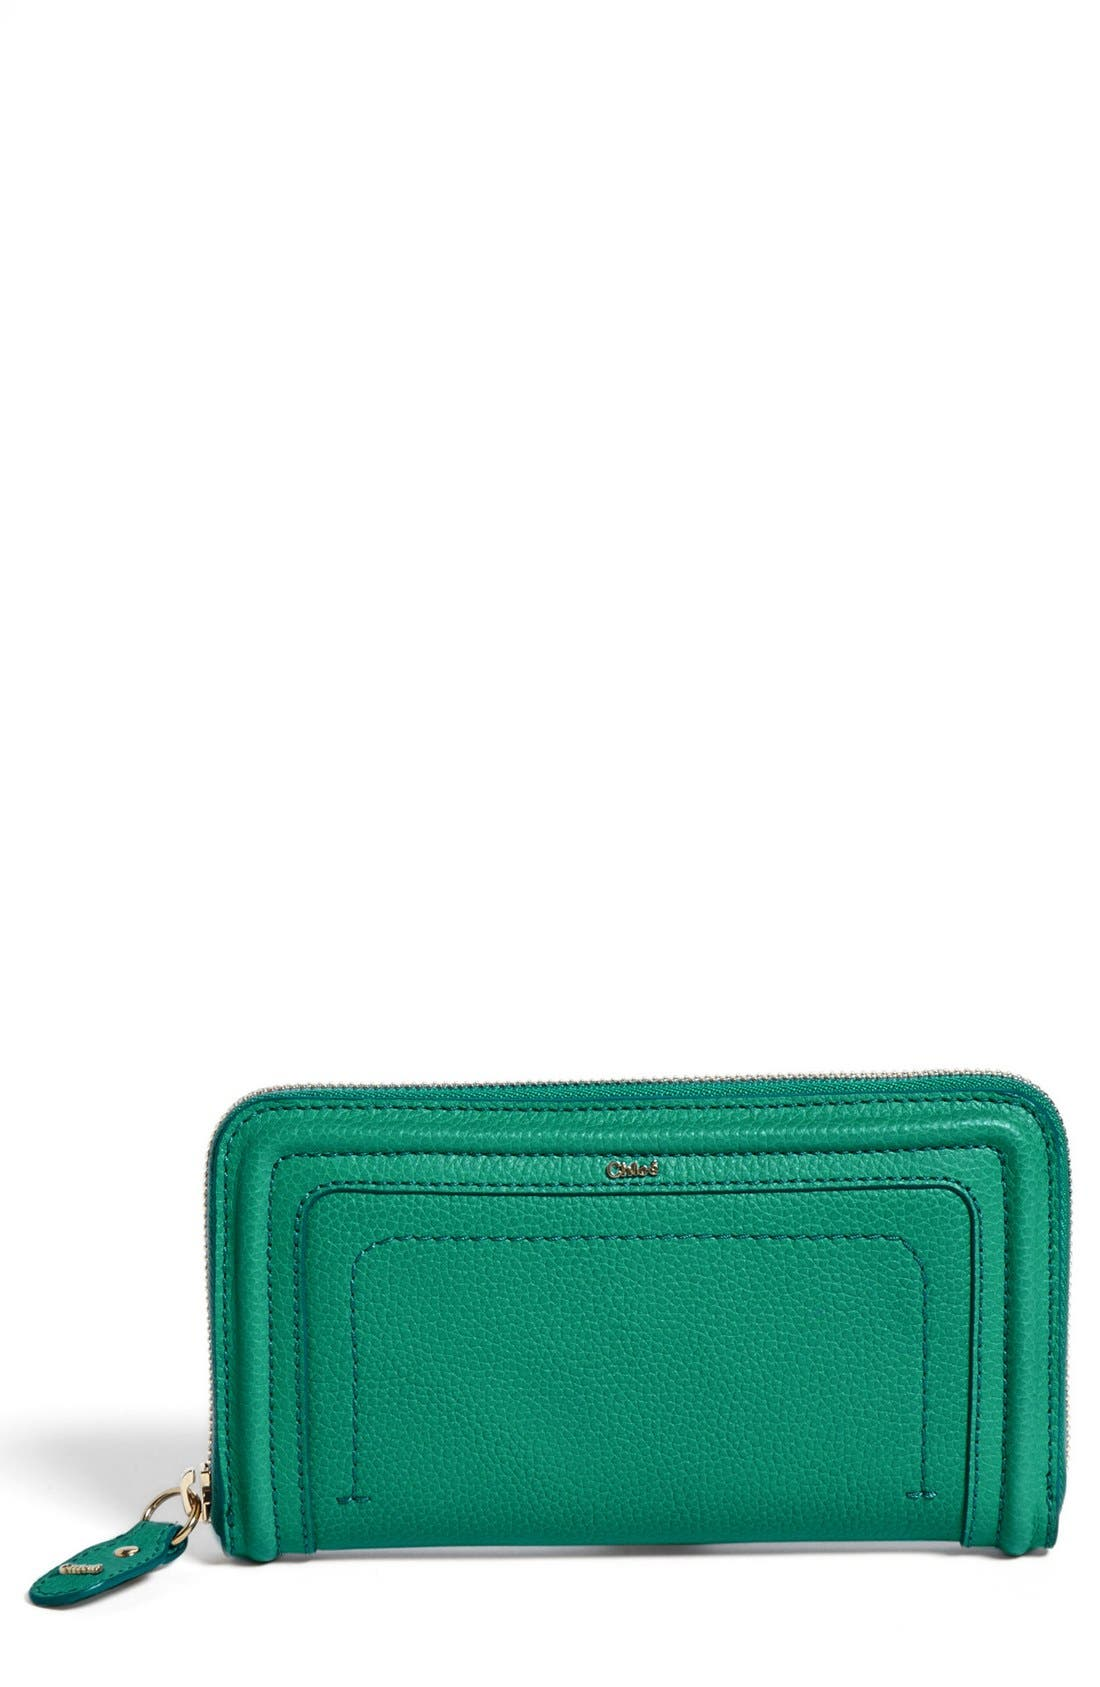 Alternate Image 1 Selected - Chloé 'Paraty' Zip Around Calfskin Leather Wallet